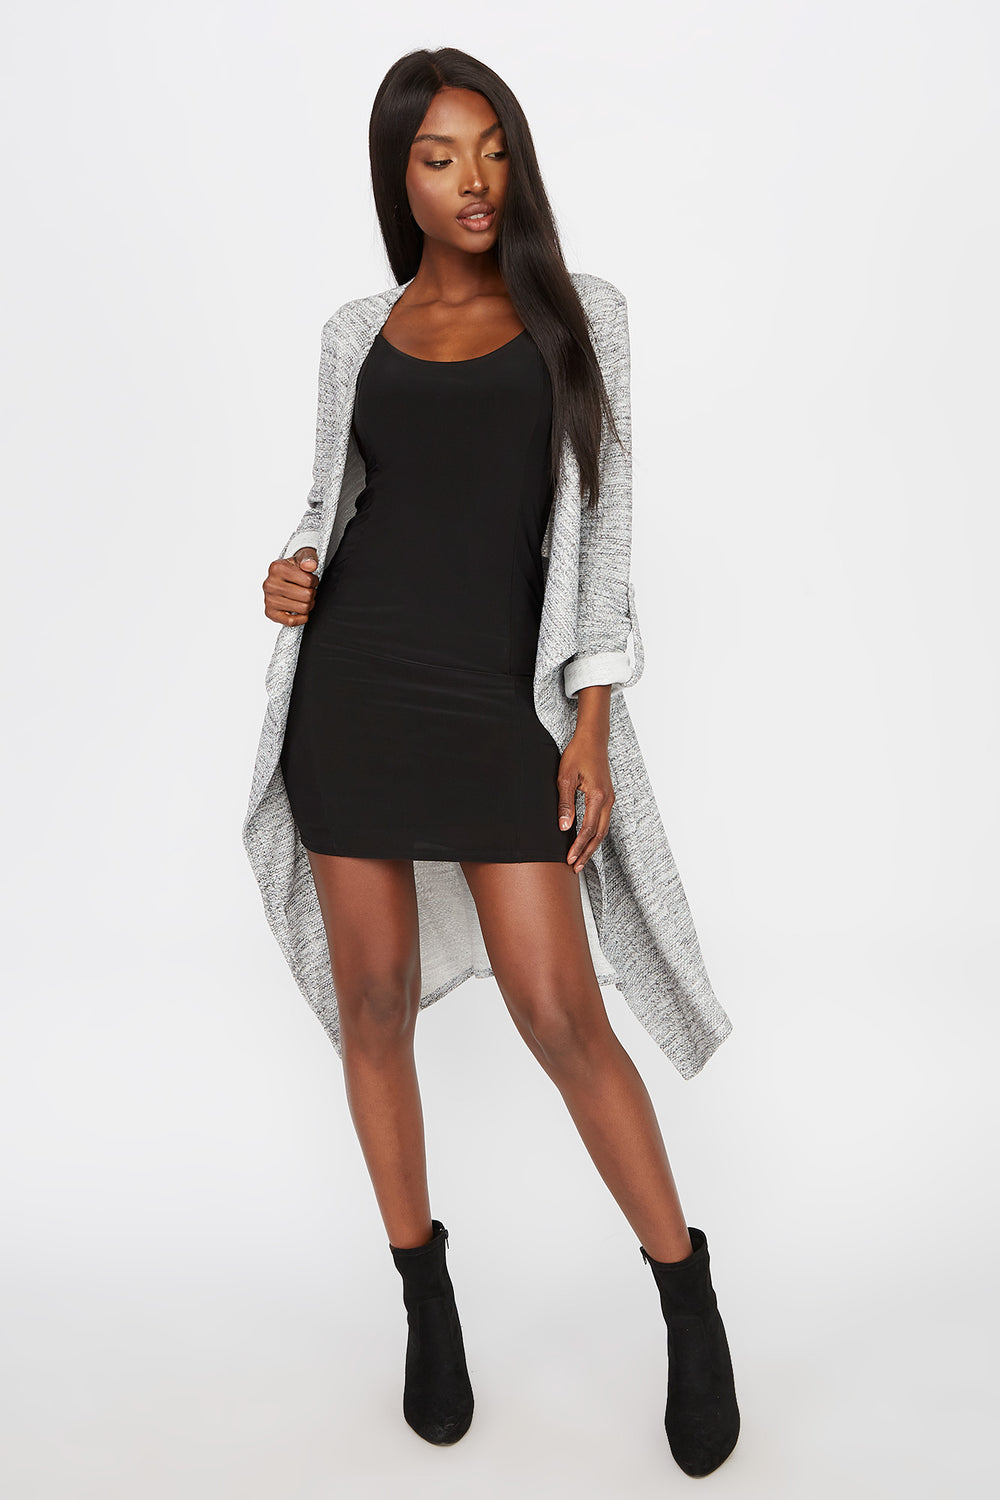 Heather Grey Waterfall Jacket Heather Grey